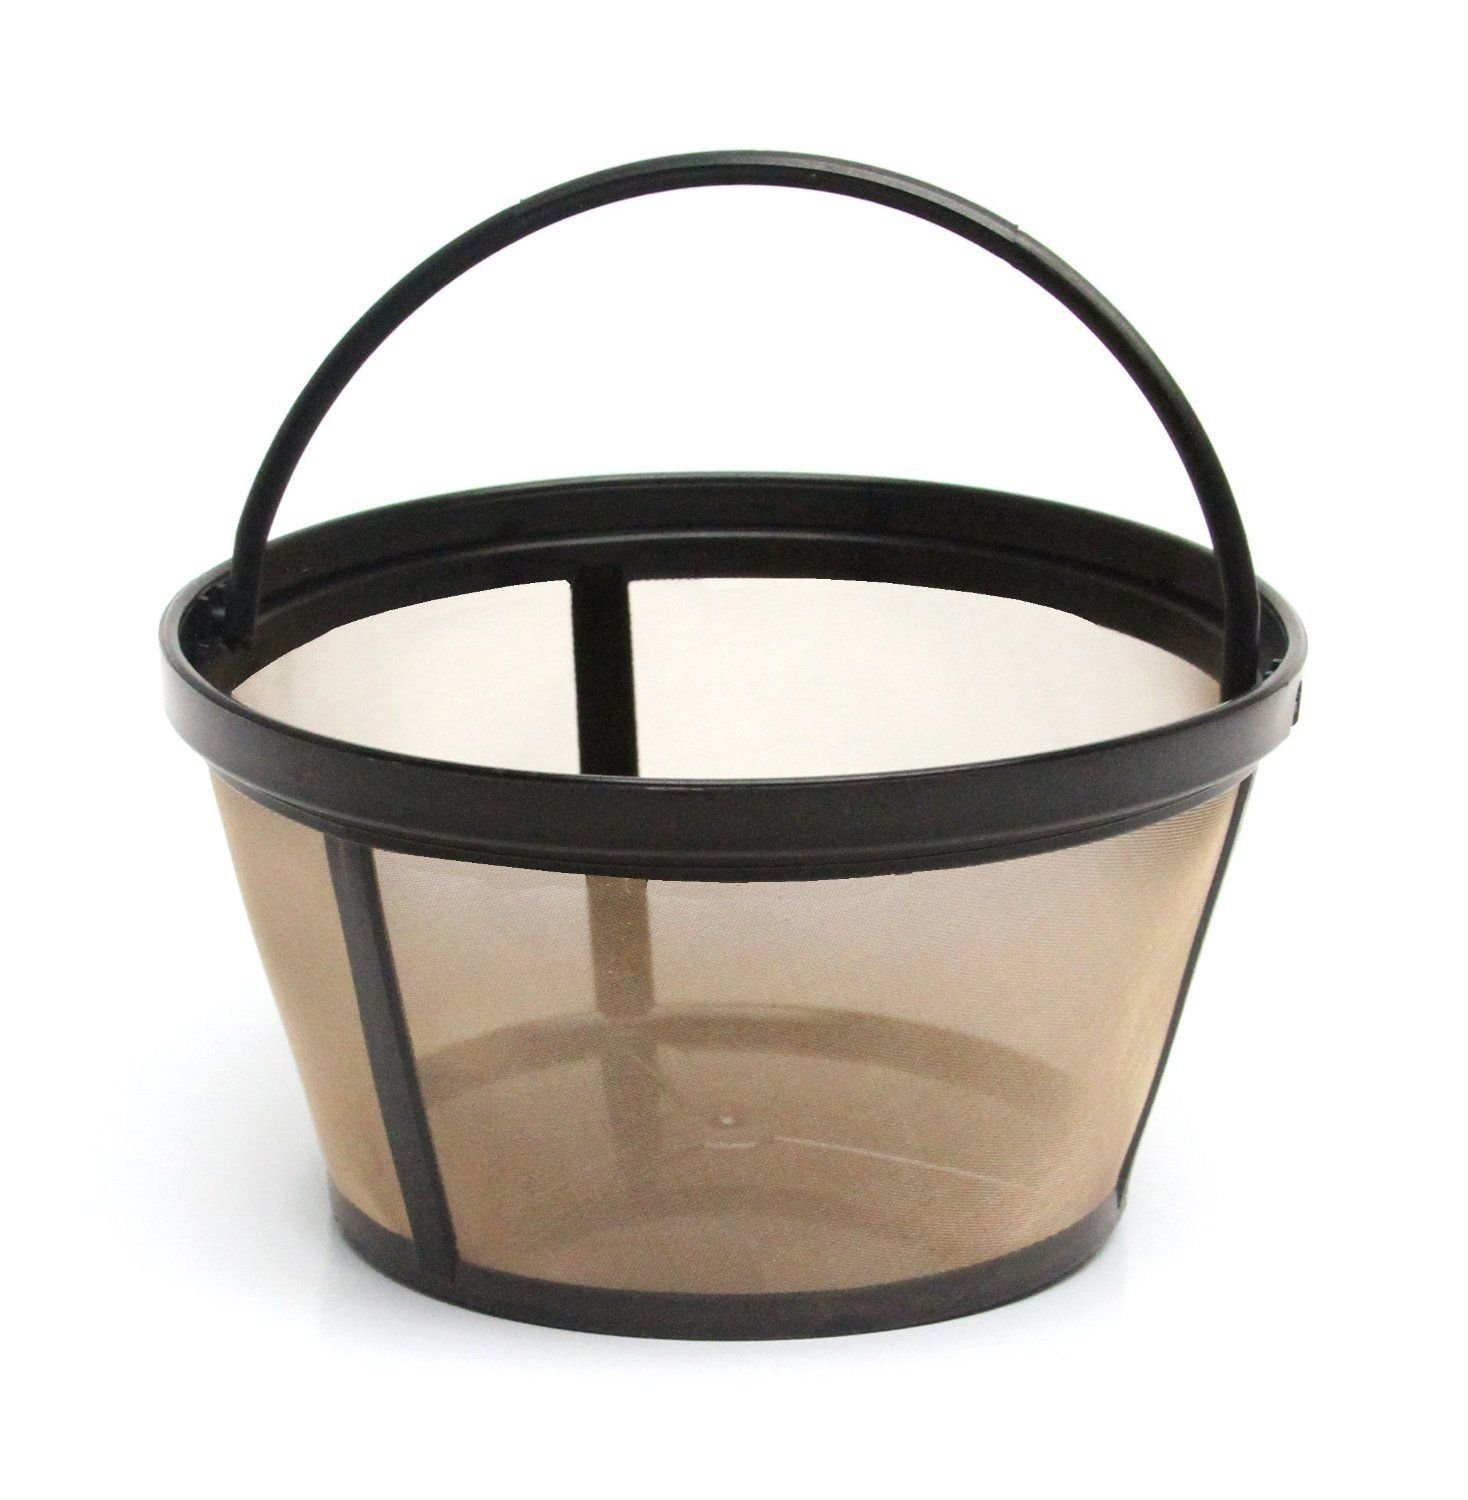 4-Cup Basket Style Permanent Coffee Filter for Mr. Coffee 4 Cup Coffeemakers by